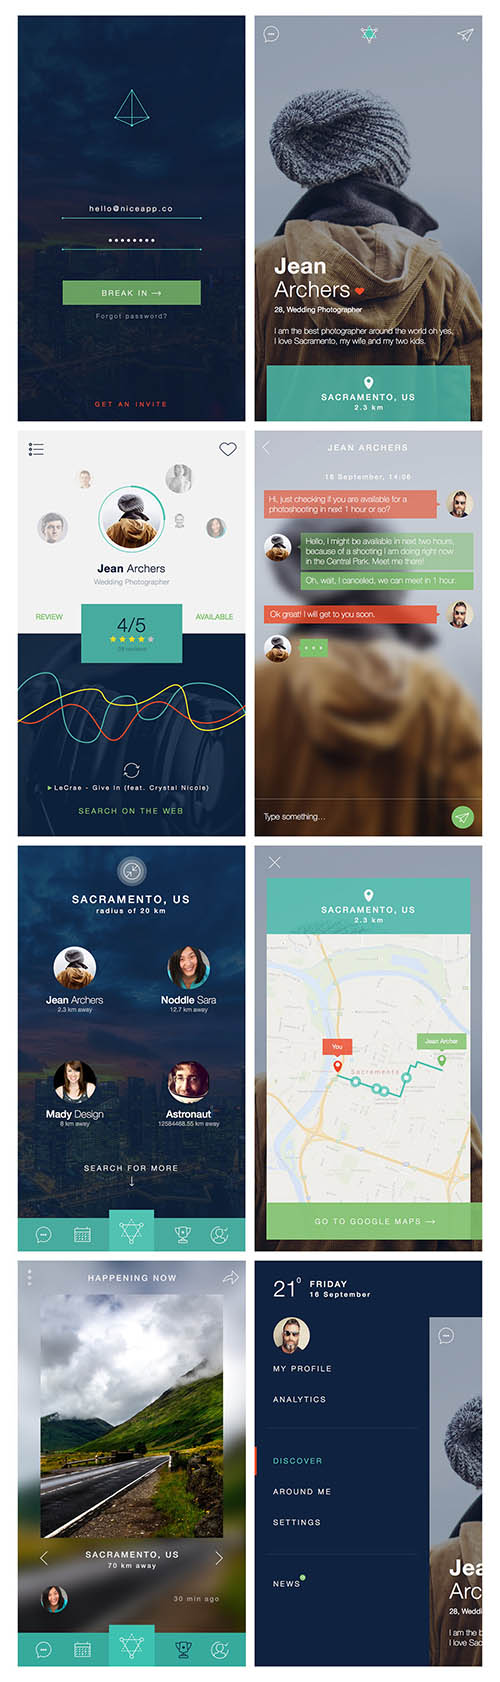 Nerdial App UI – 8 screens FREE PSD By 72px designs